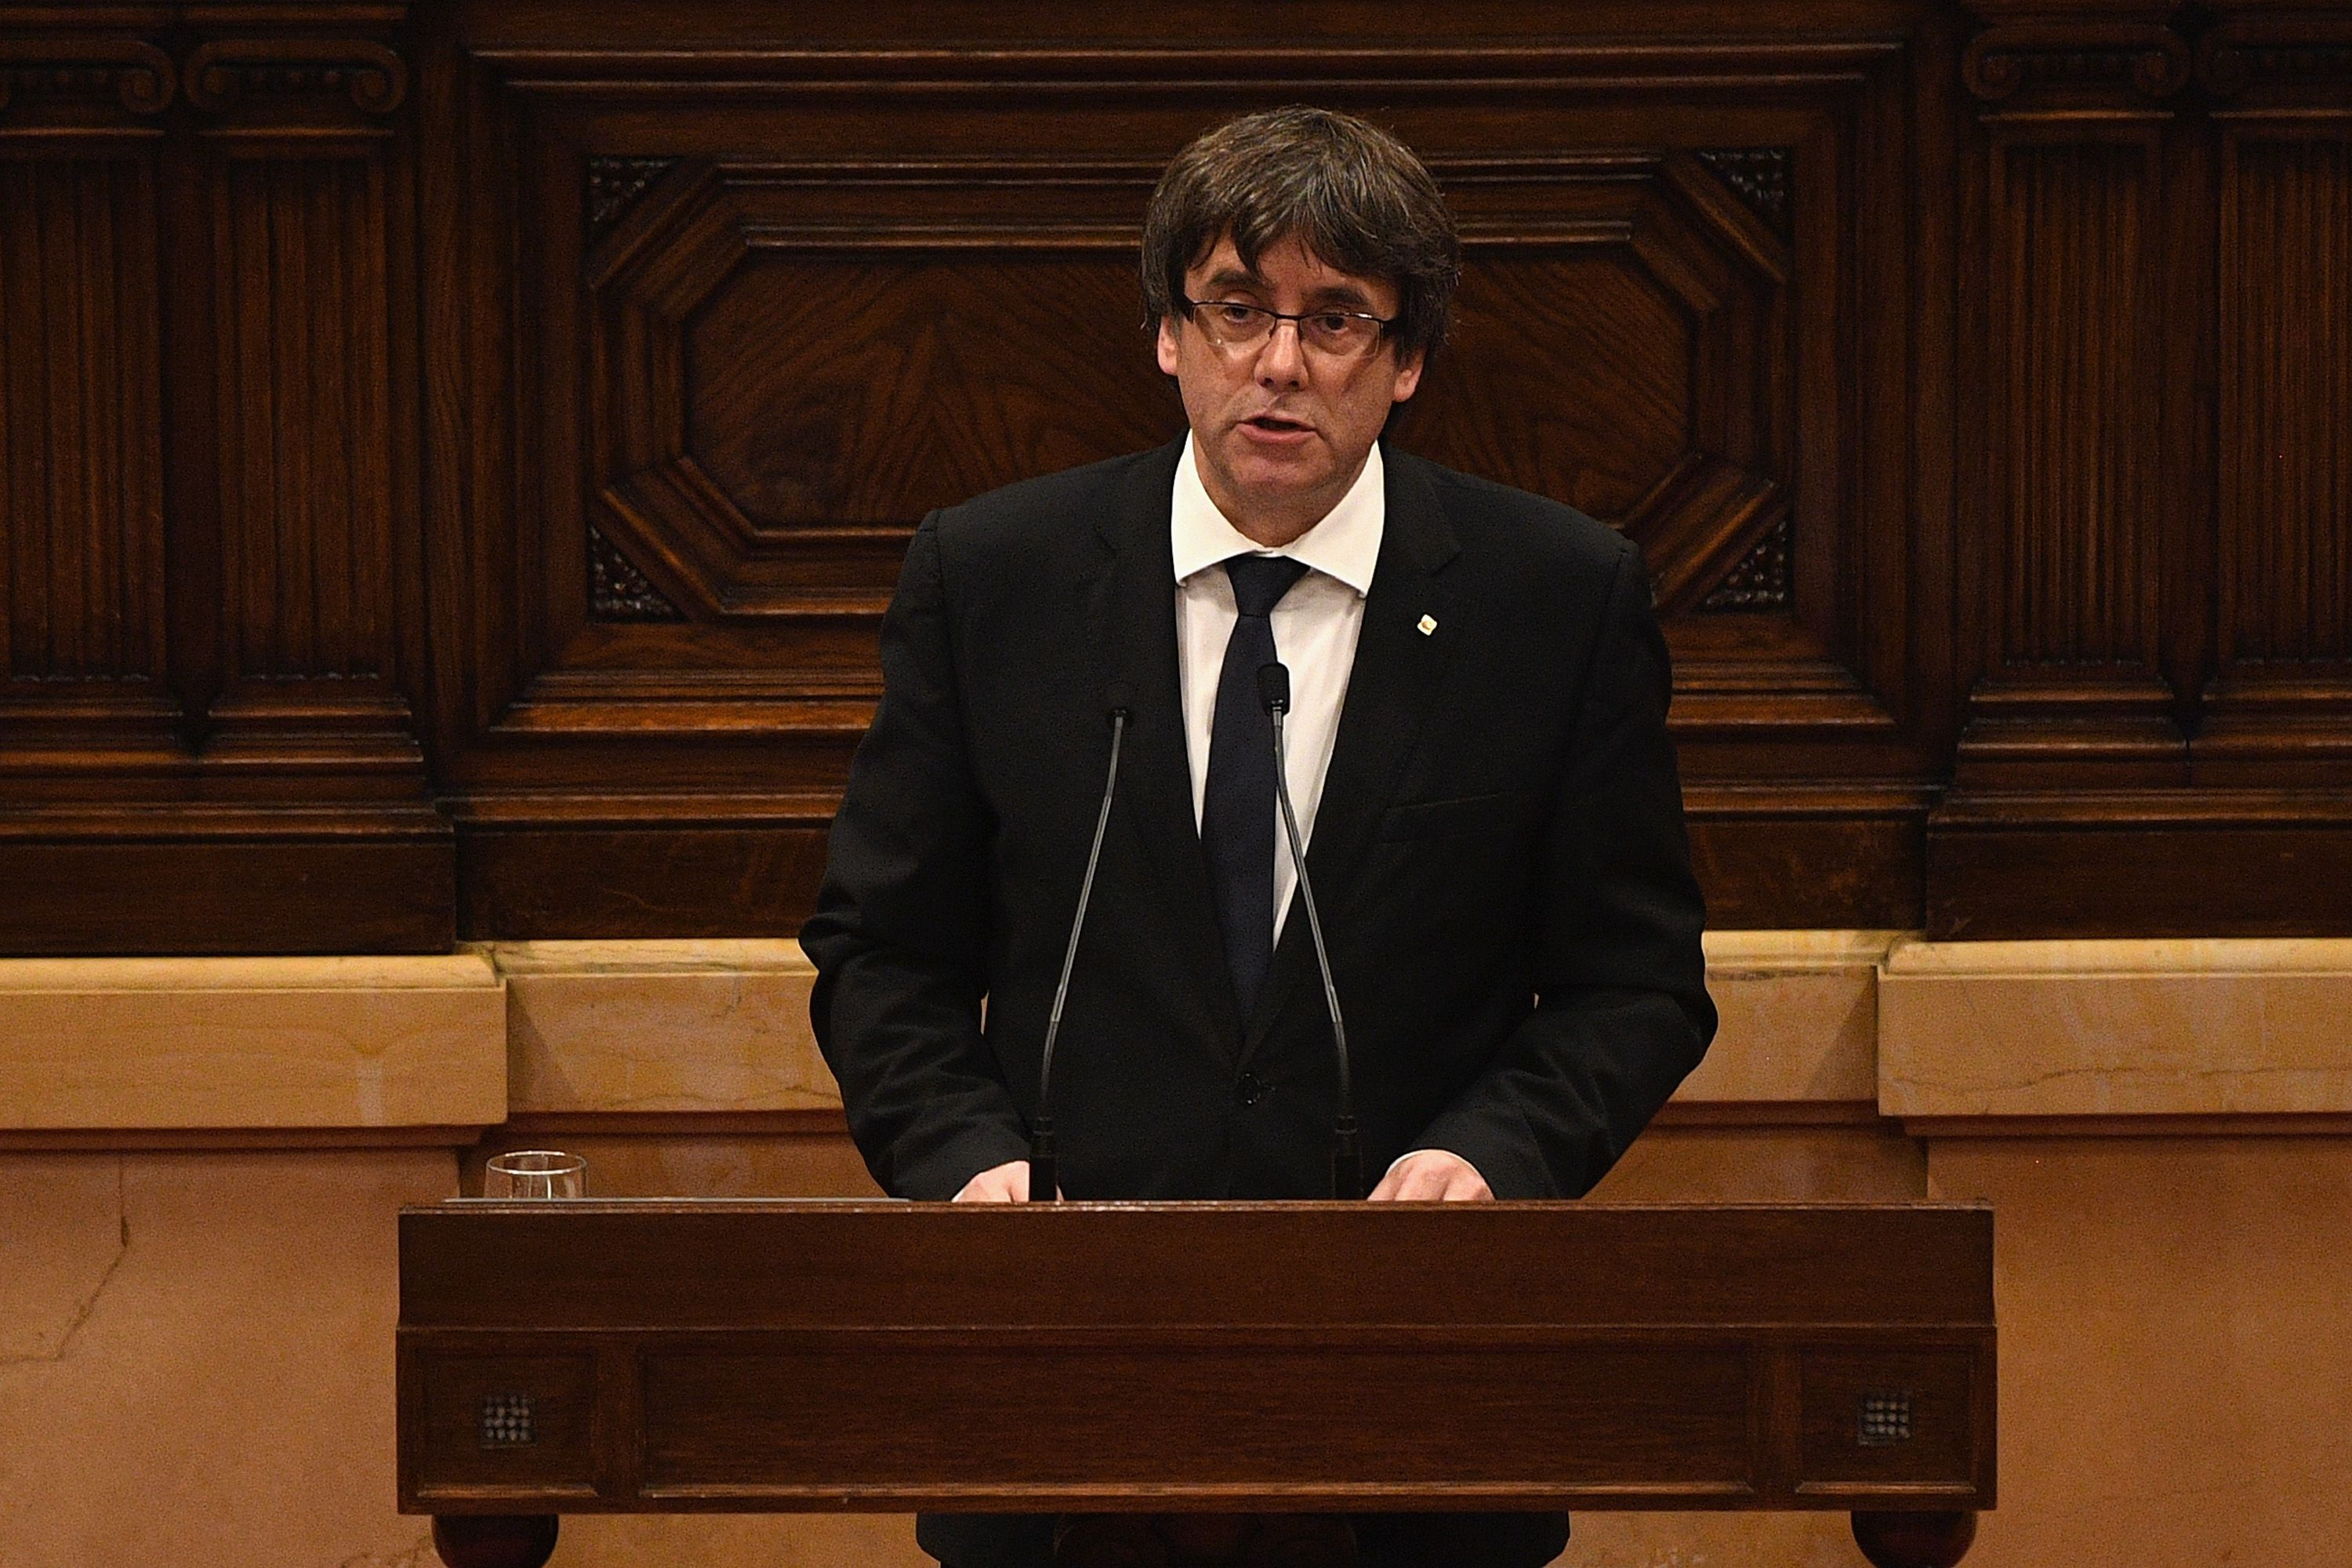 BARCELONA, SPAIN - OCTOBER 10:  President of Catalonia, Carles Puigdemont, speaks in his address to the Catalan Parliament at the Palau del Parlament de Catalunya on October 10, 2017 in Barcelona, Spain. After the October 1 referendum, and weeks of build-up, Catalonia's president is to address the Catalan Parliament in which a declaration of independence is expected to be made.  (Photo by David Ramos/Getty Images)